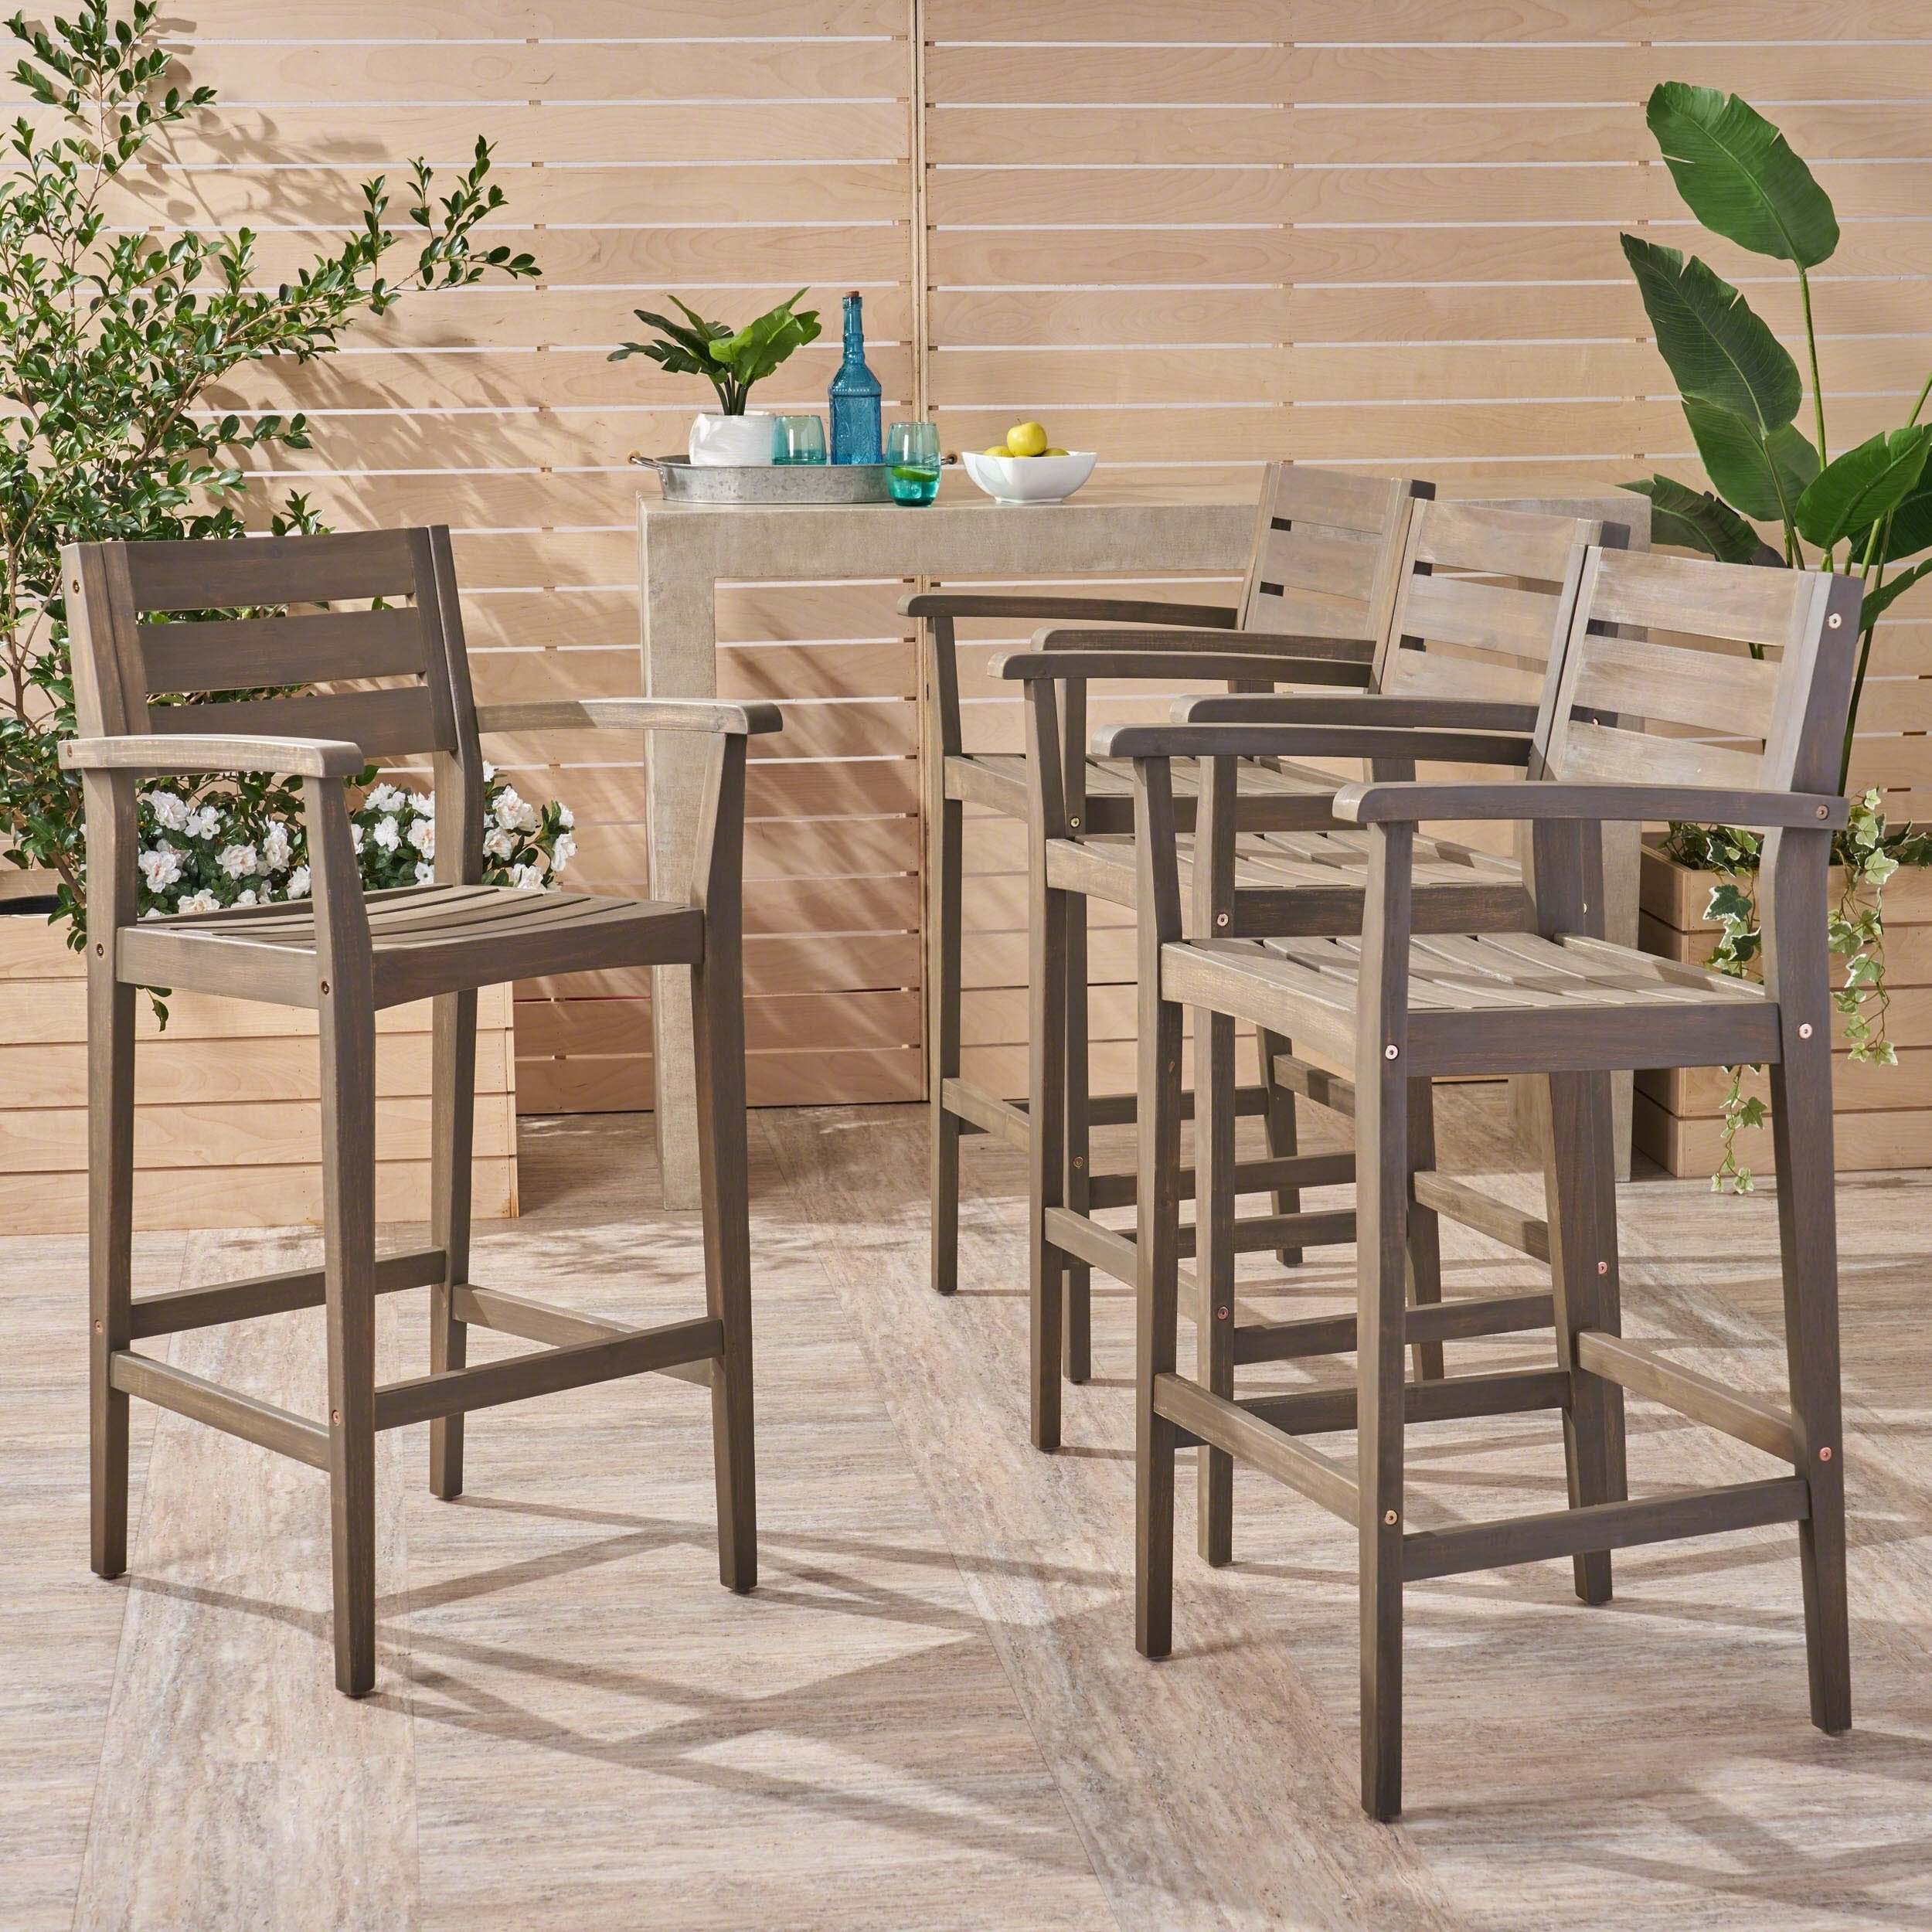 Shop Stamford Outdoor Bar Stools 30 Seats Solid Acacia Wood